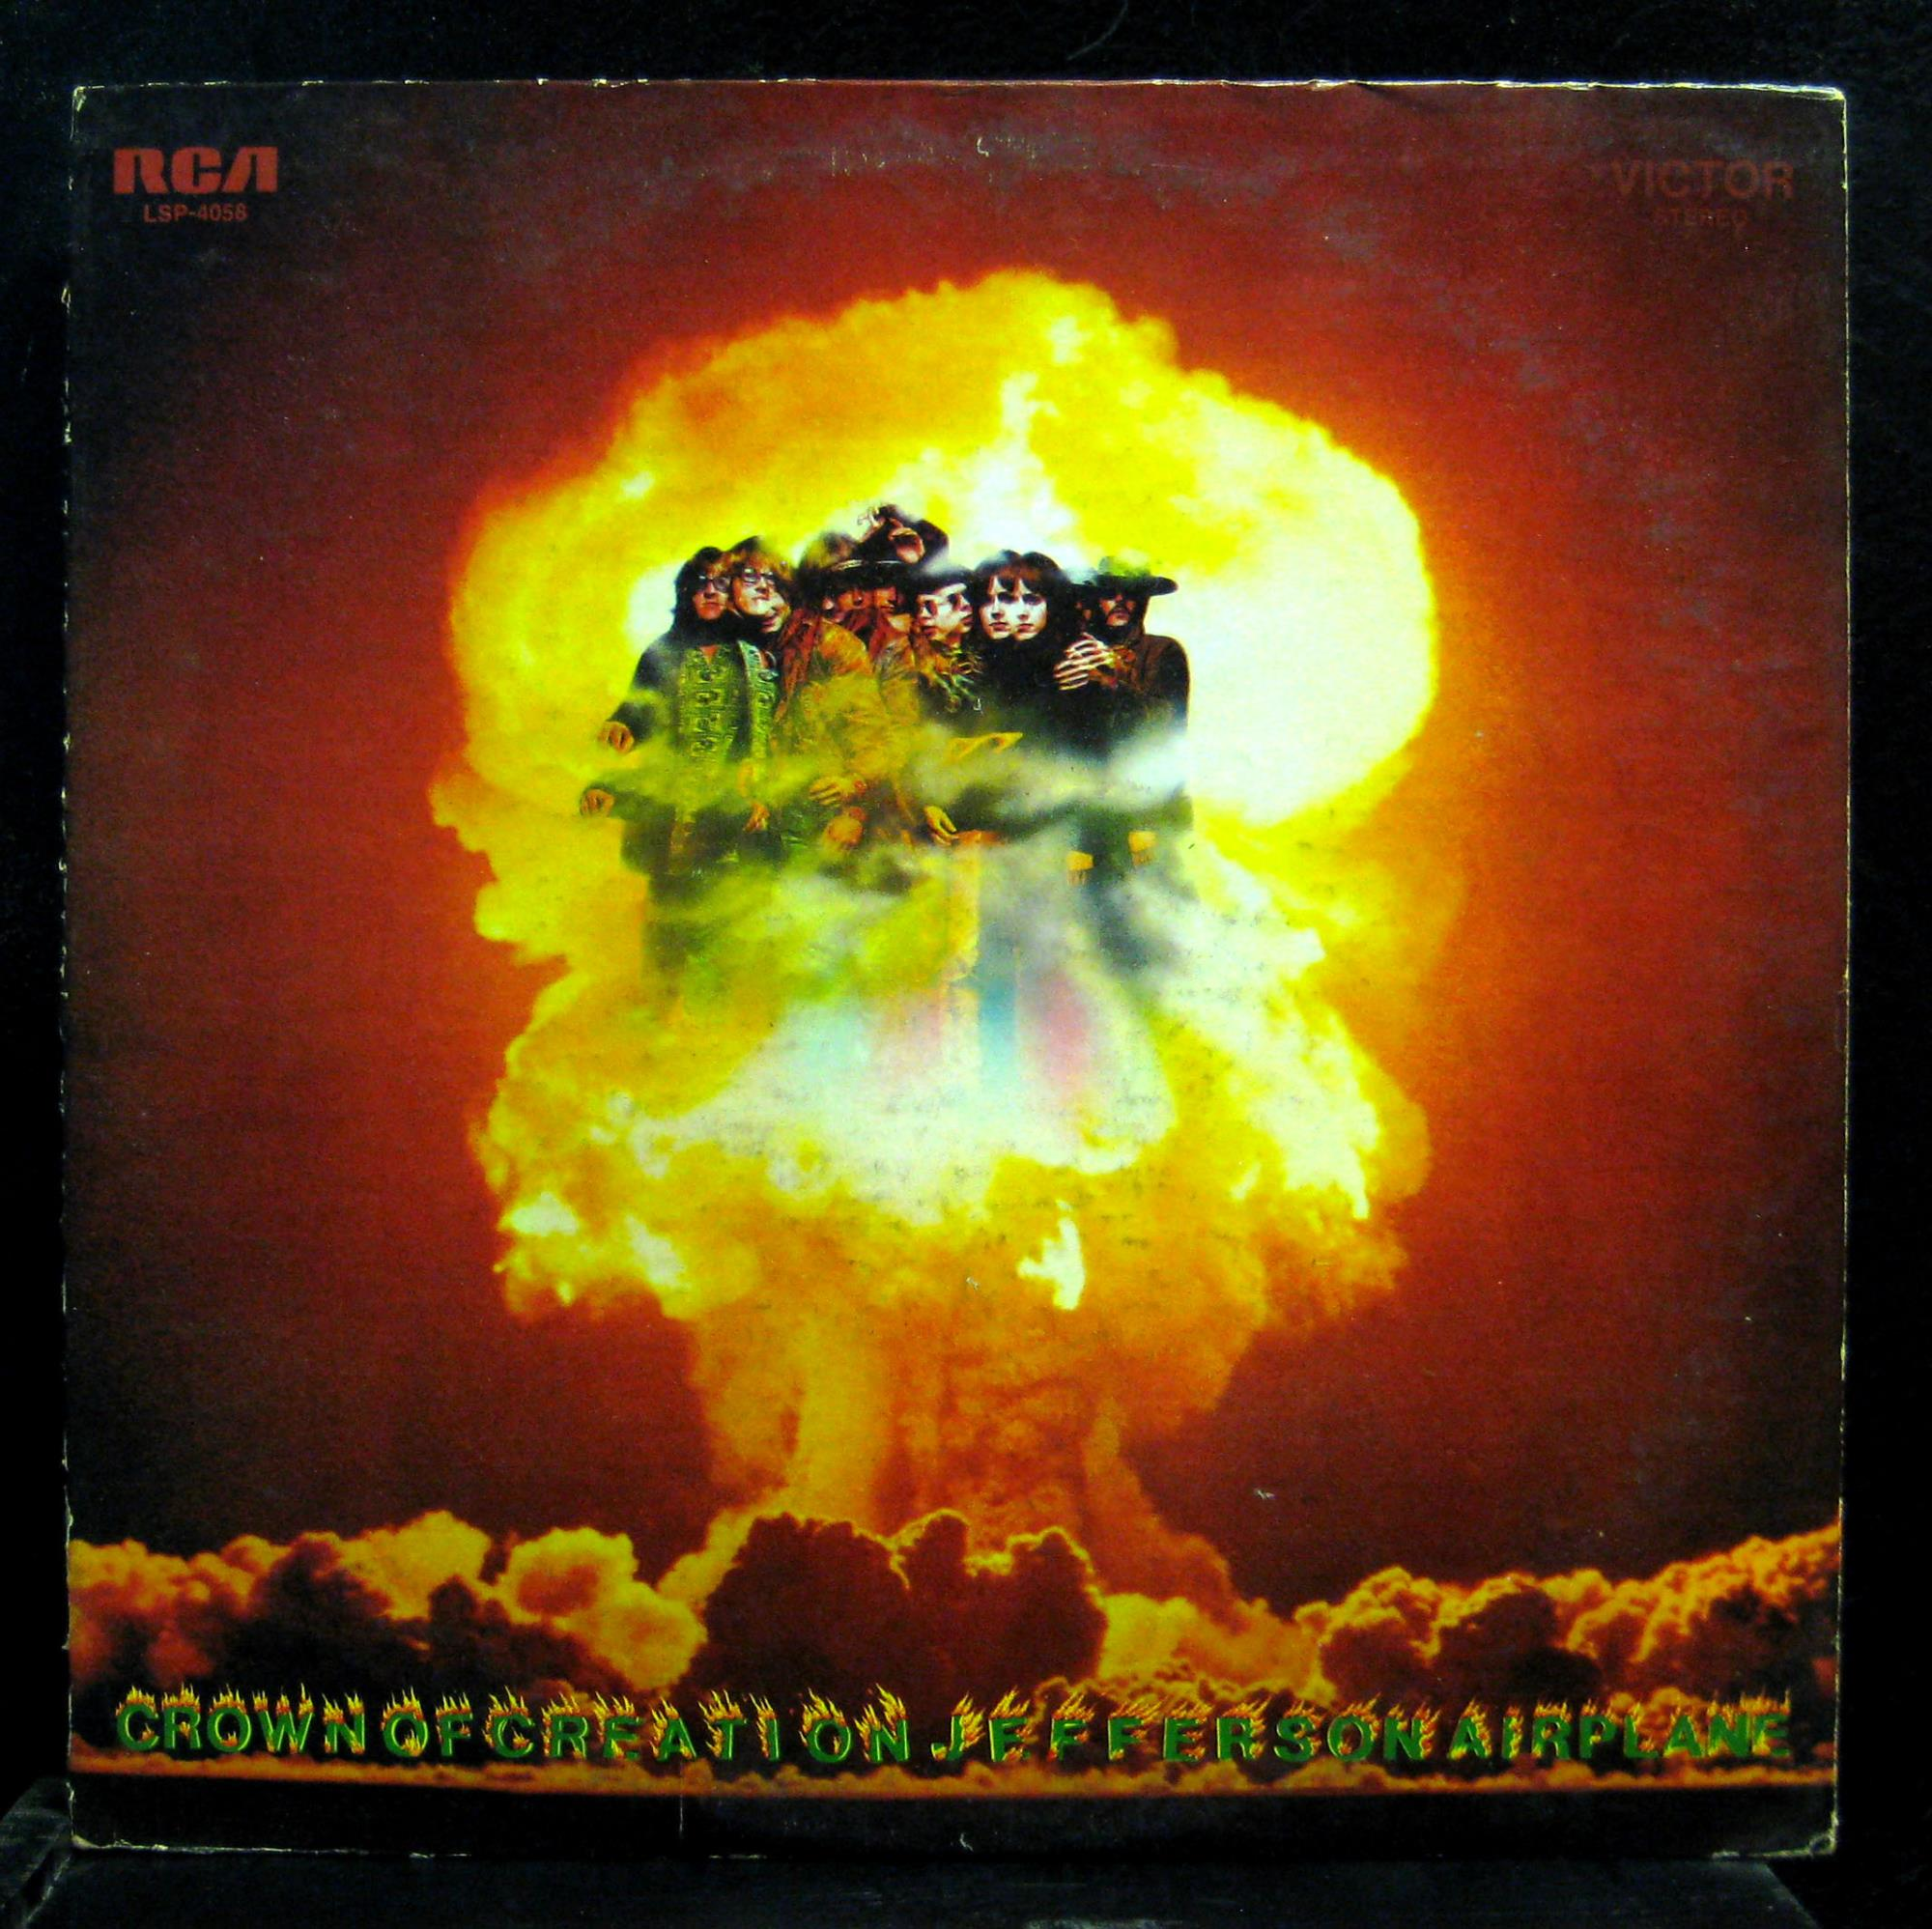 kantner black singles A conversation with jefferson starship's paul kantner mike ragogna: paul, you played a concert at roswell, and your new album is called tales from the mothershipof course, roswell has a certain connotation, it being the at the heart of many aliens among us stories and the ultimate conspiracy theory.